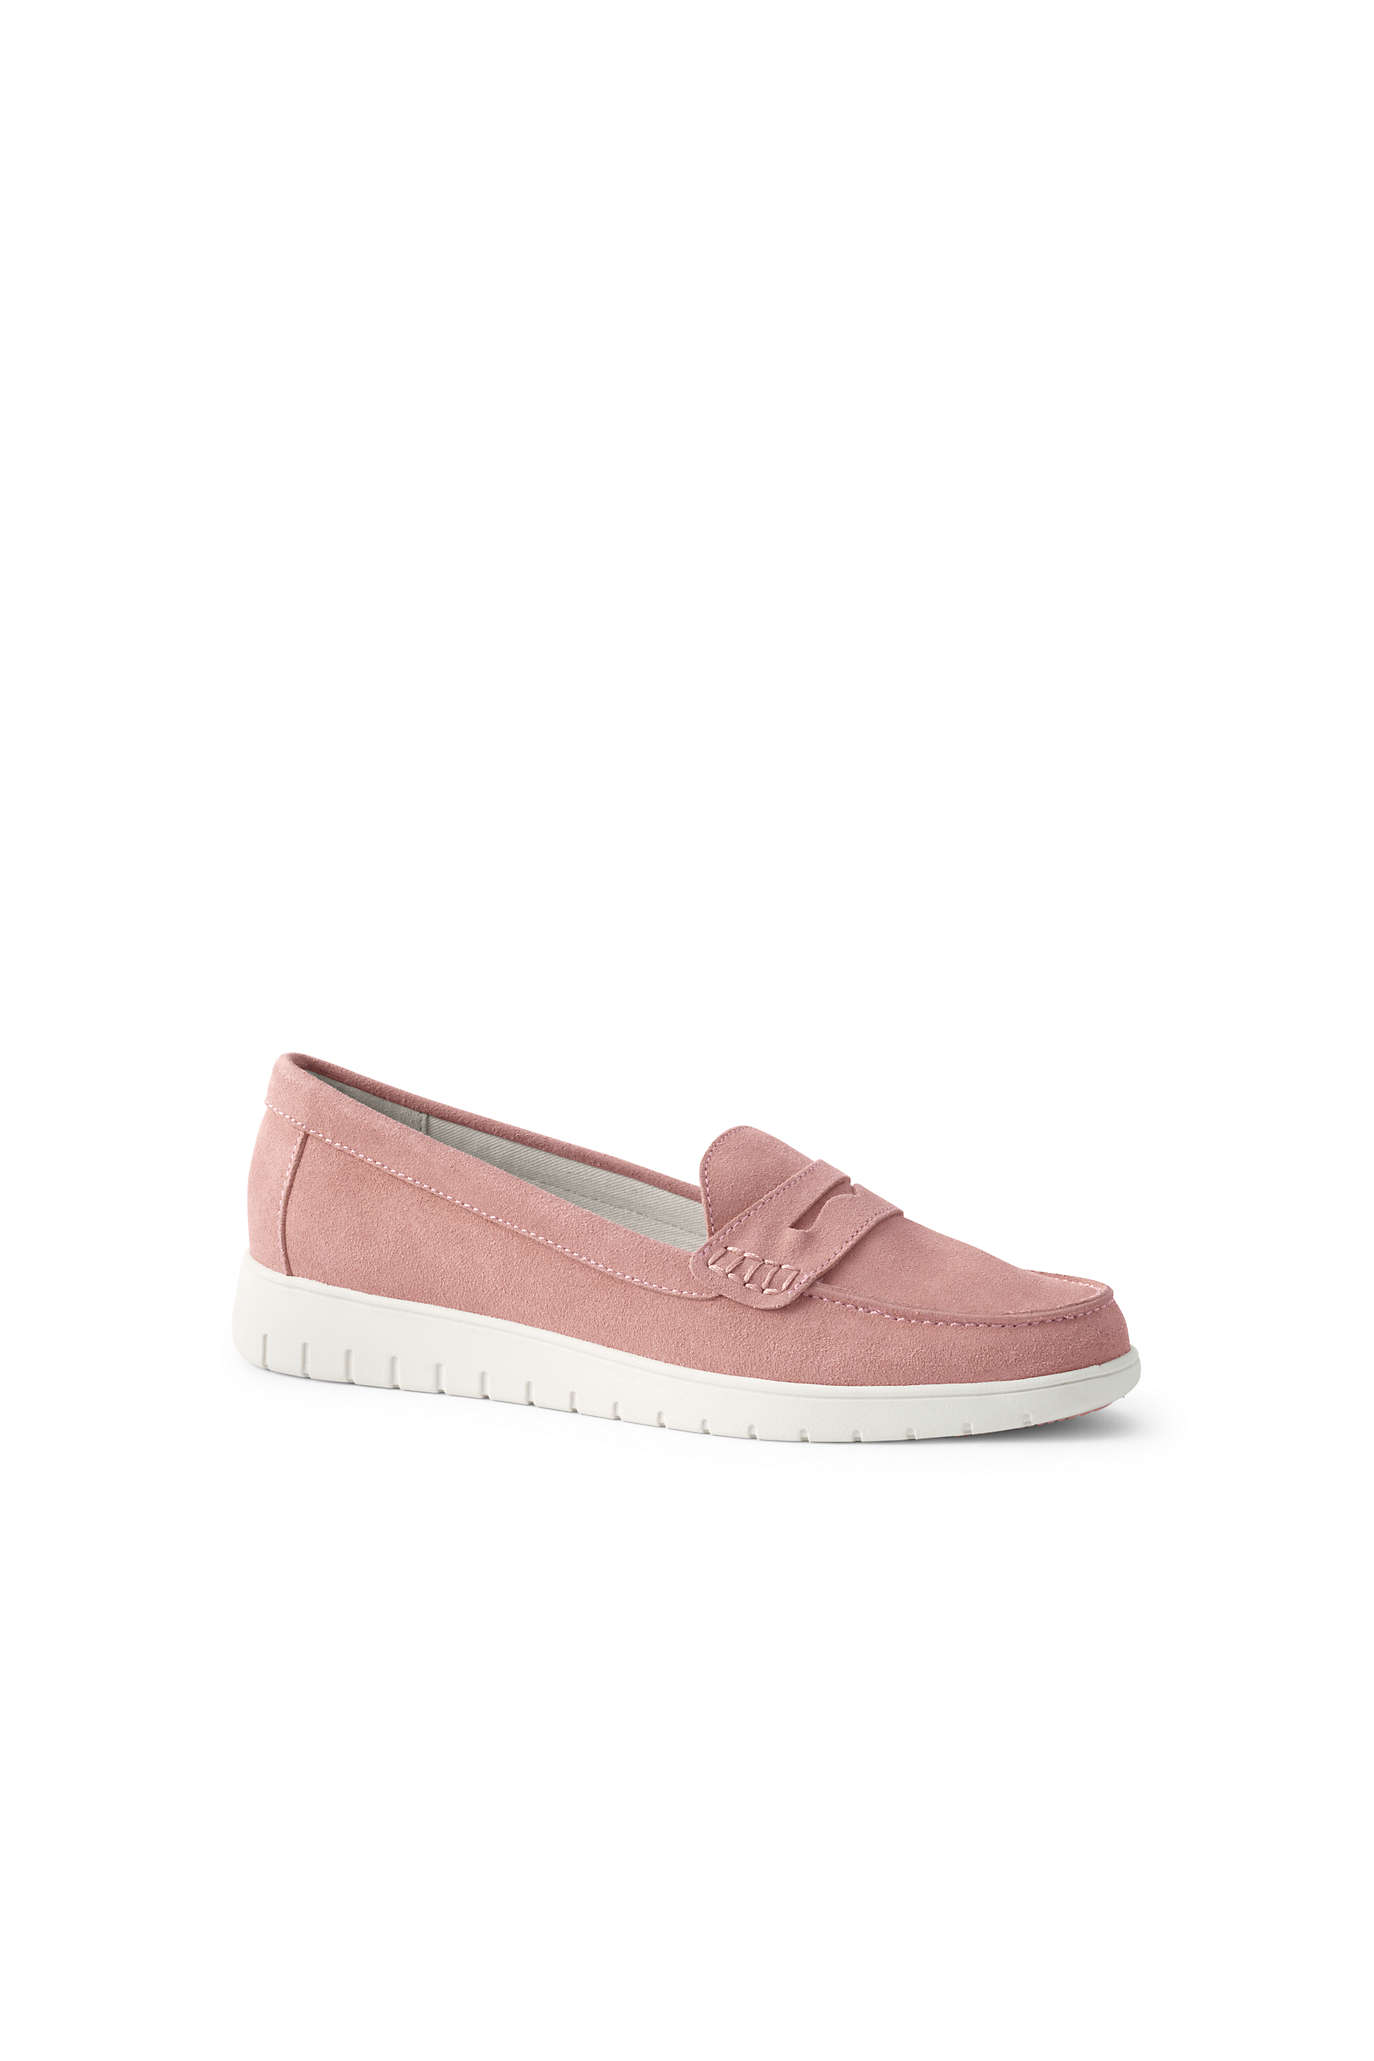 Women's Slip On Penny Loafer Shoes